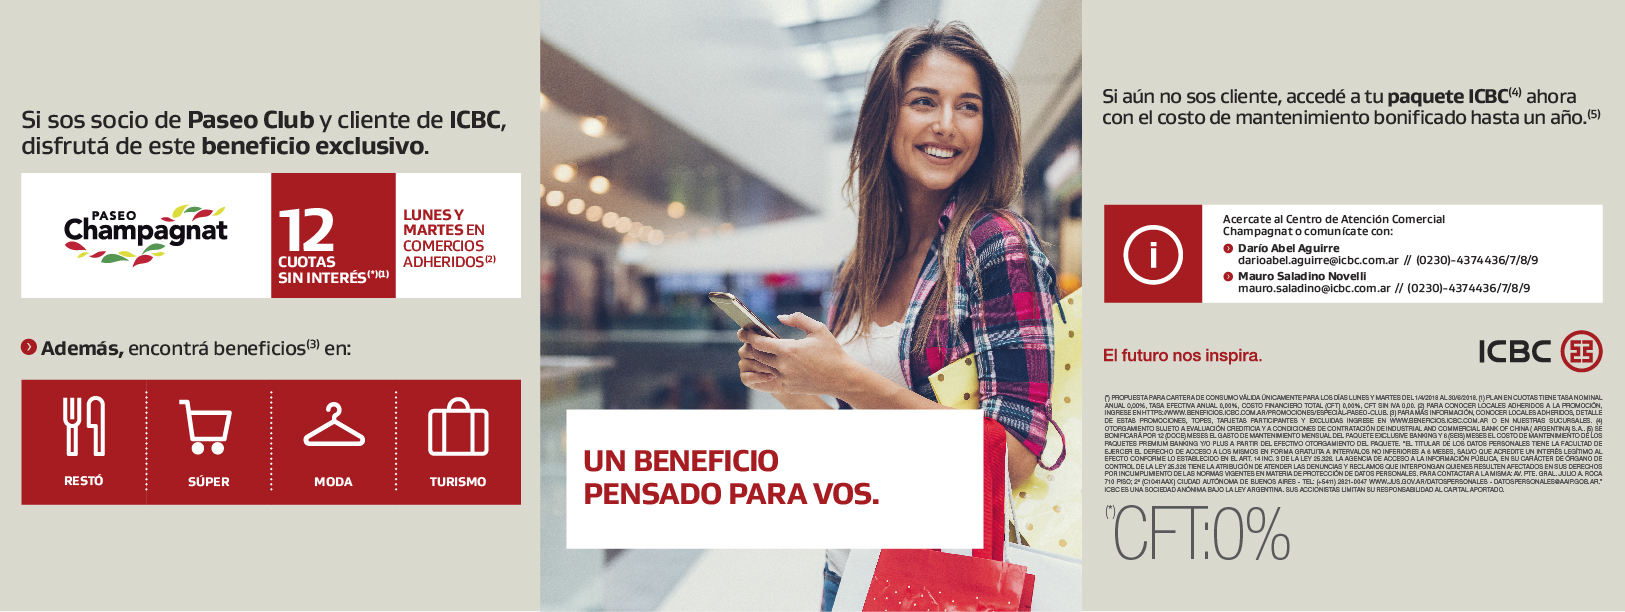 Banners-ICBC-Paseo-Club-Lunes-y-Martes-1140x440-01